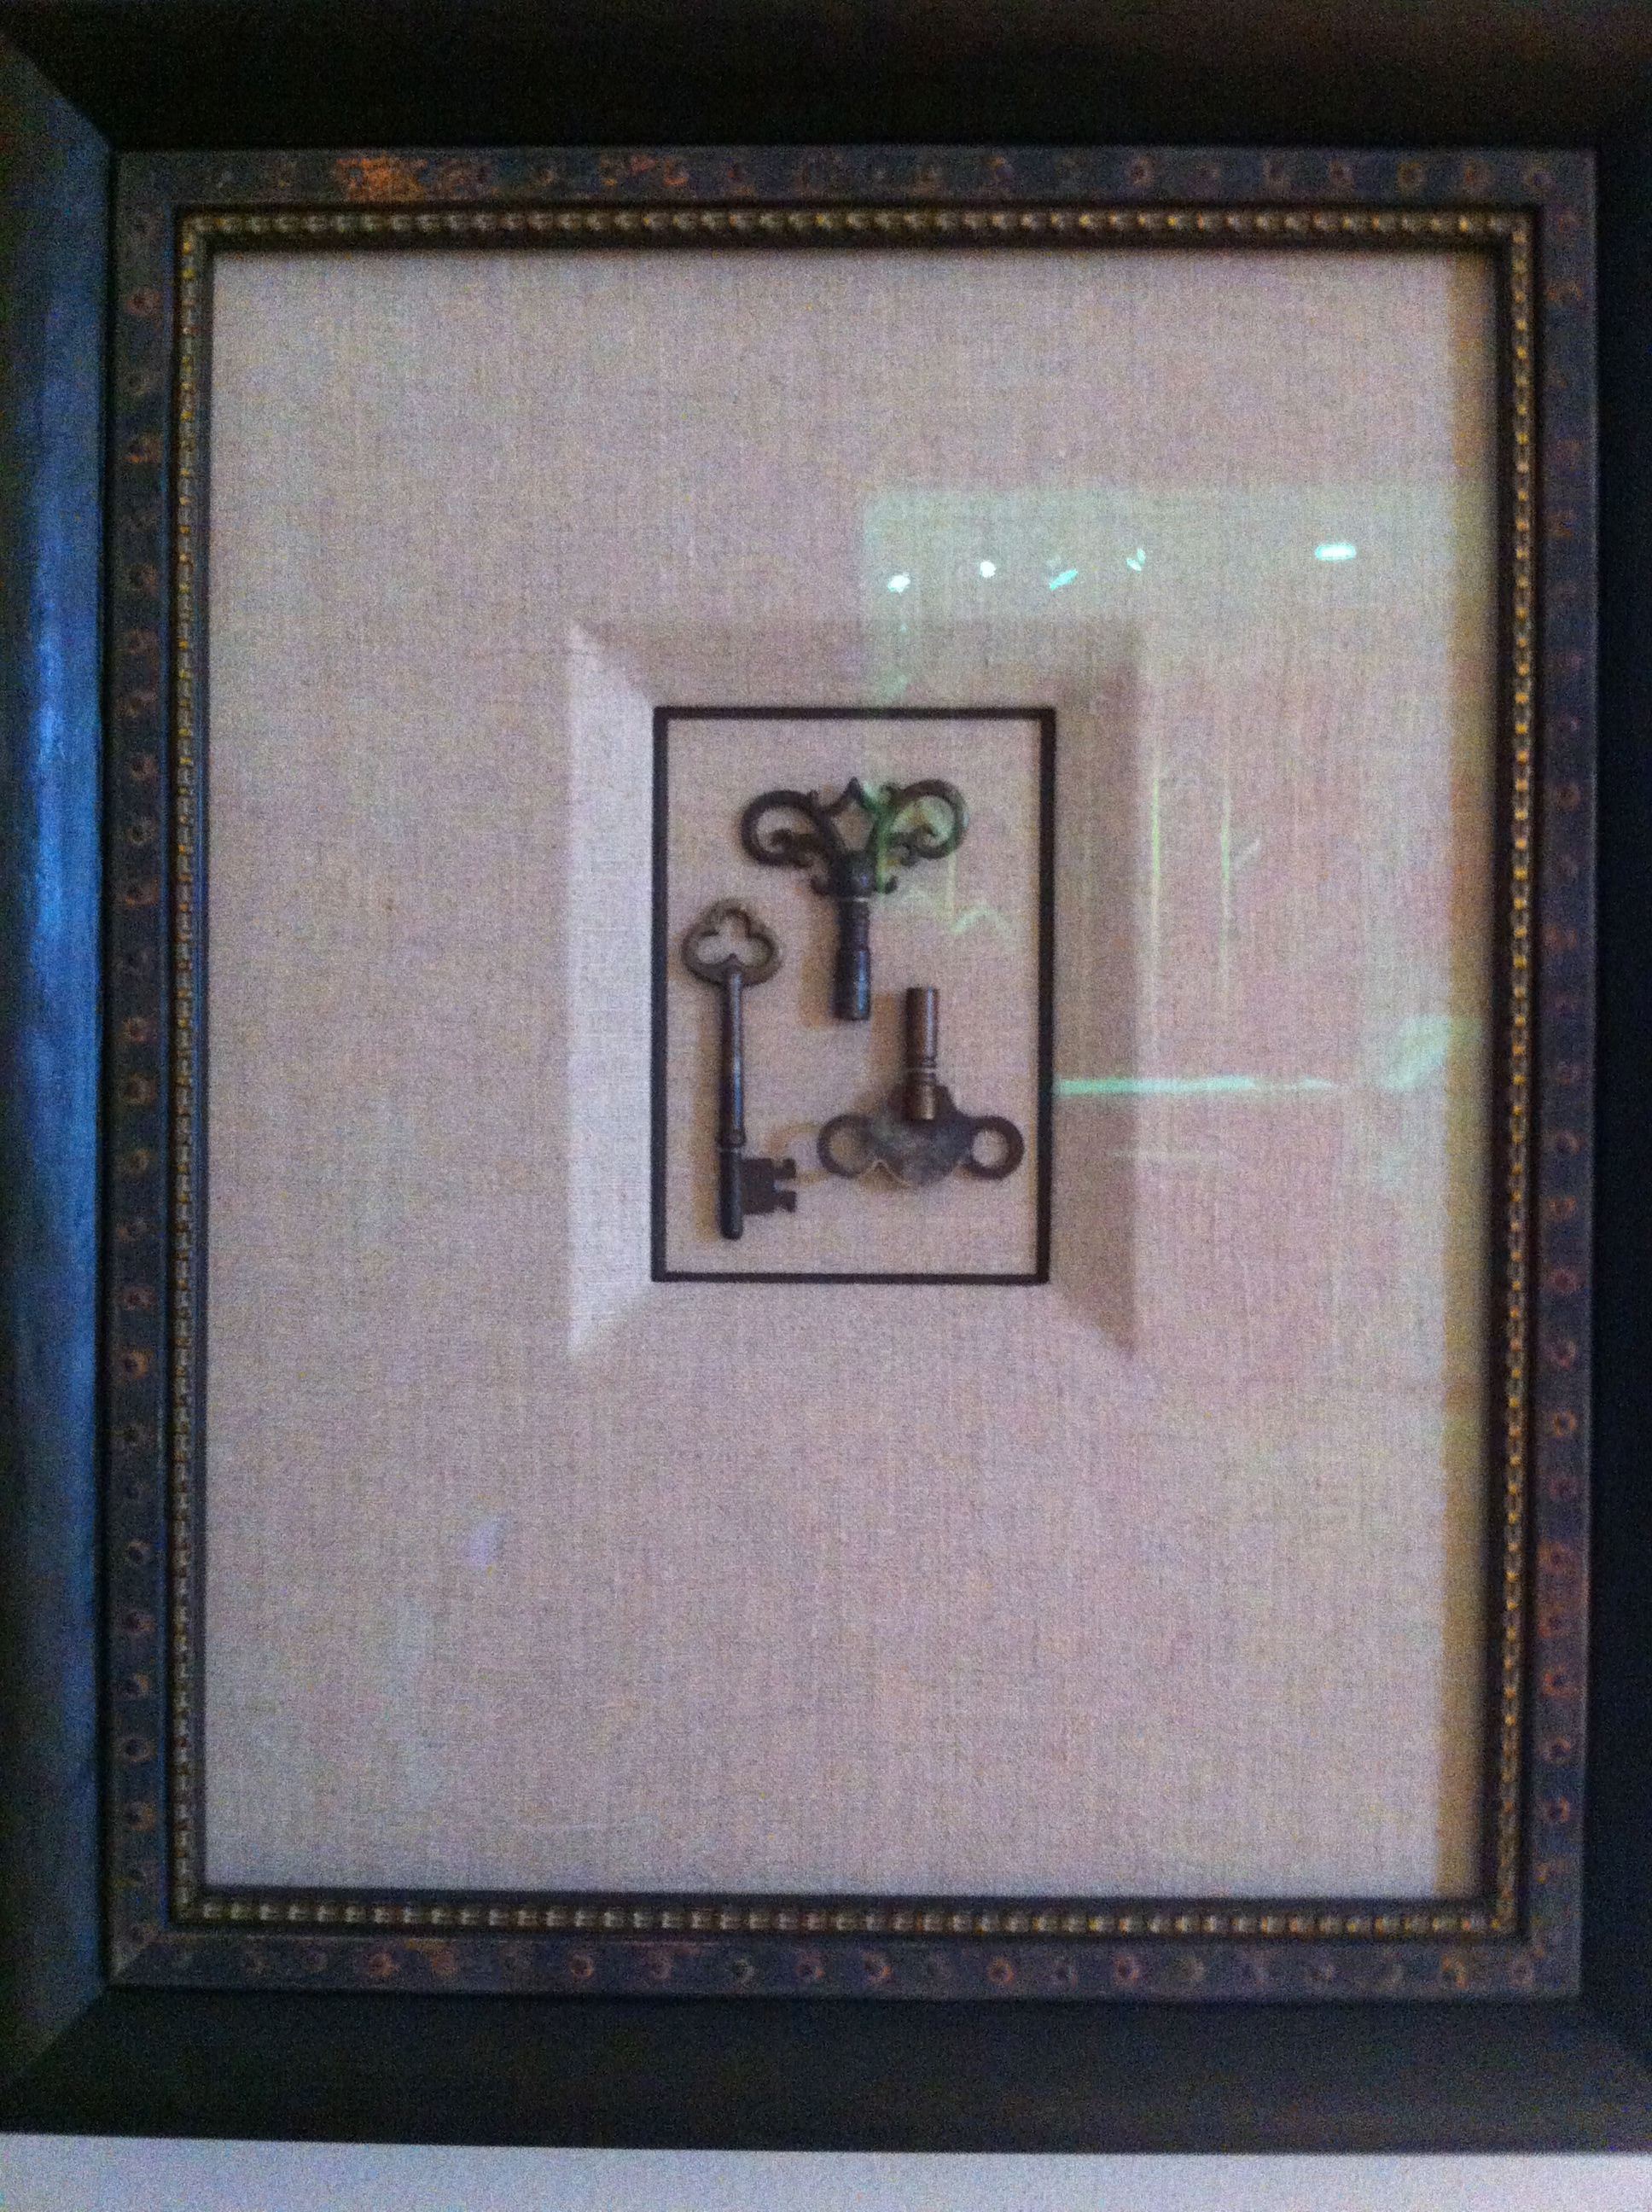 Antique Keys - beautiful mat ... | Framing - Matting | Pinterest